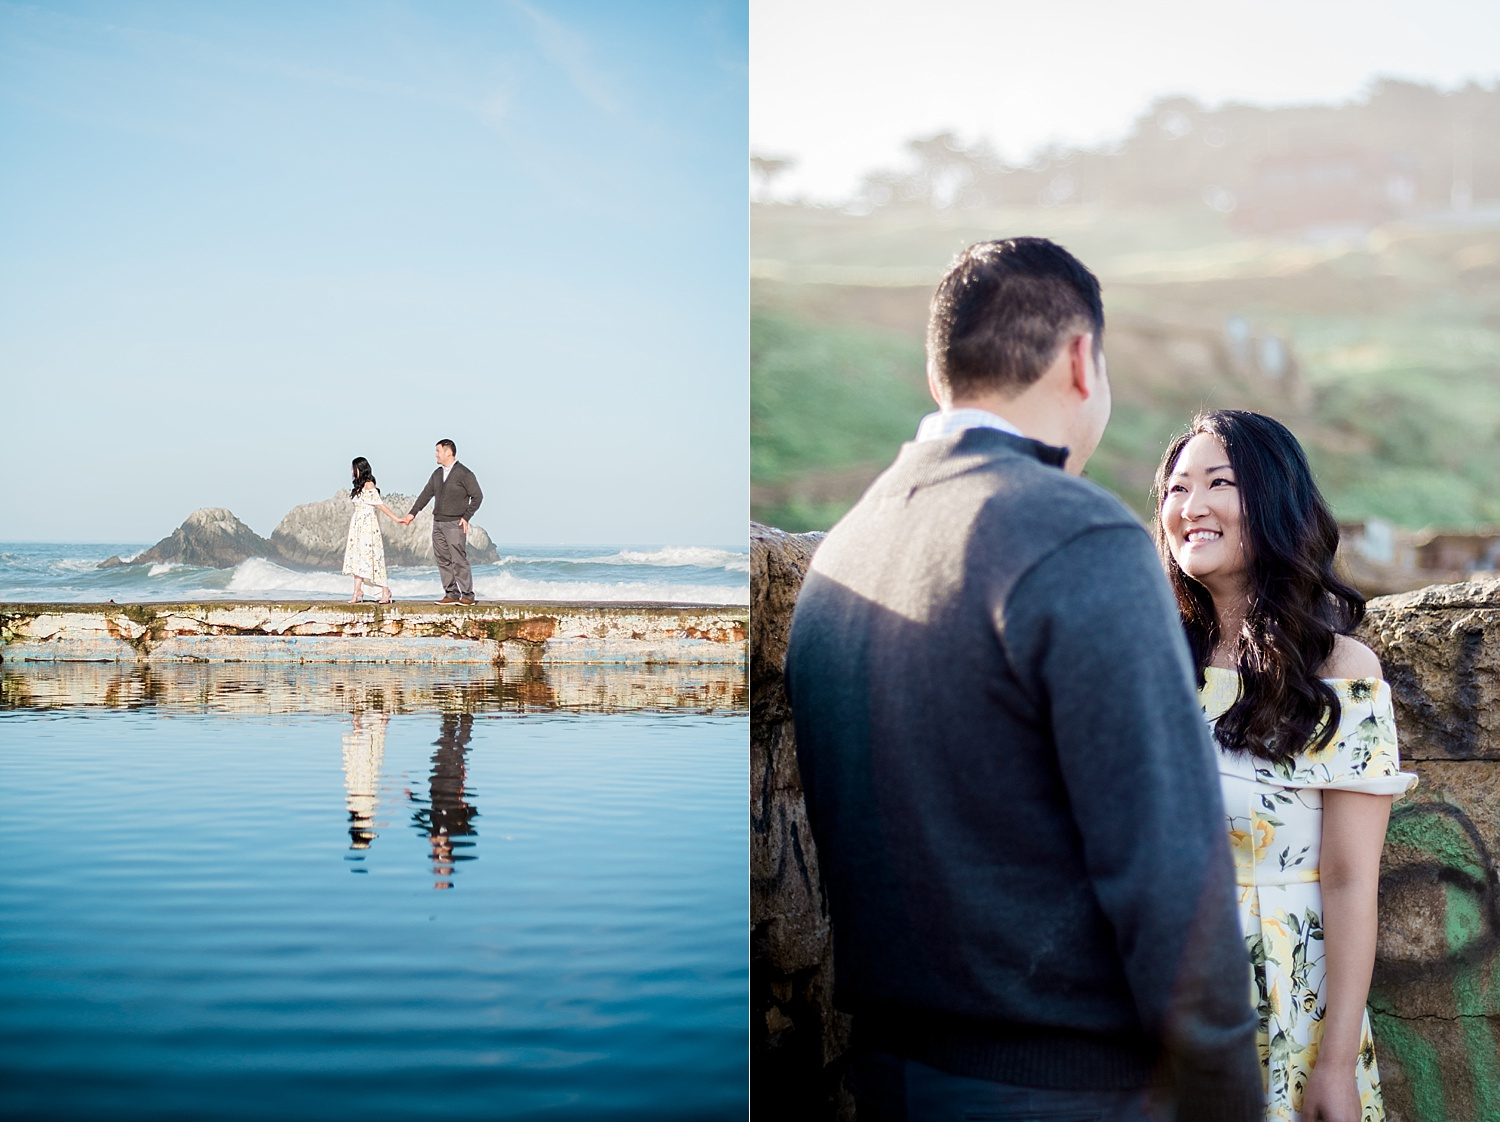 jennifer-jayn-photography-san-francisco-sutro-baths-engagement-session_0010.jpg